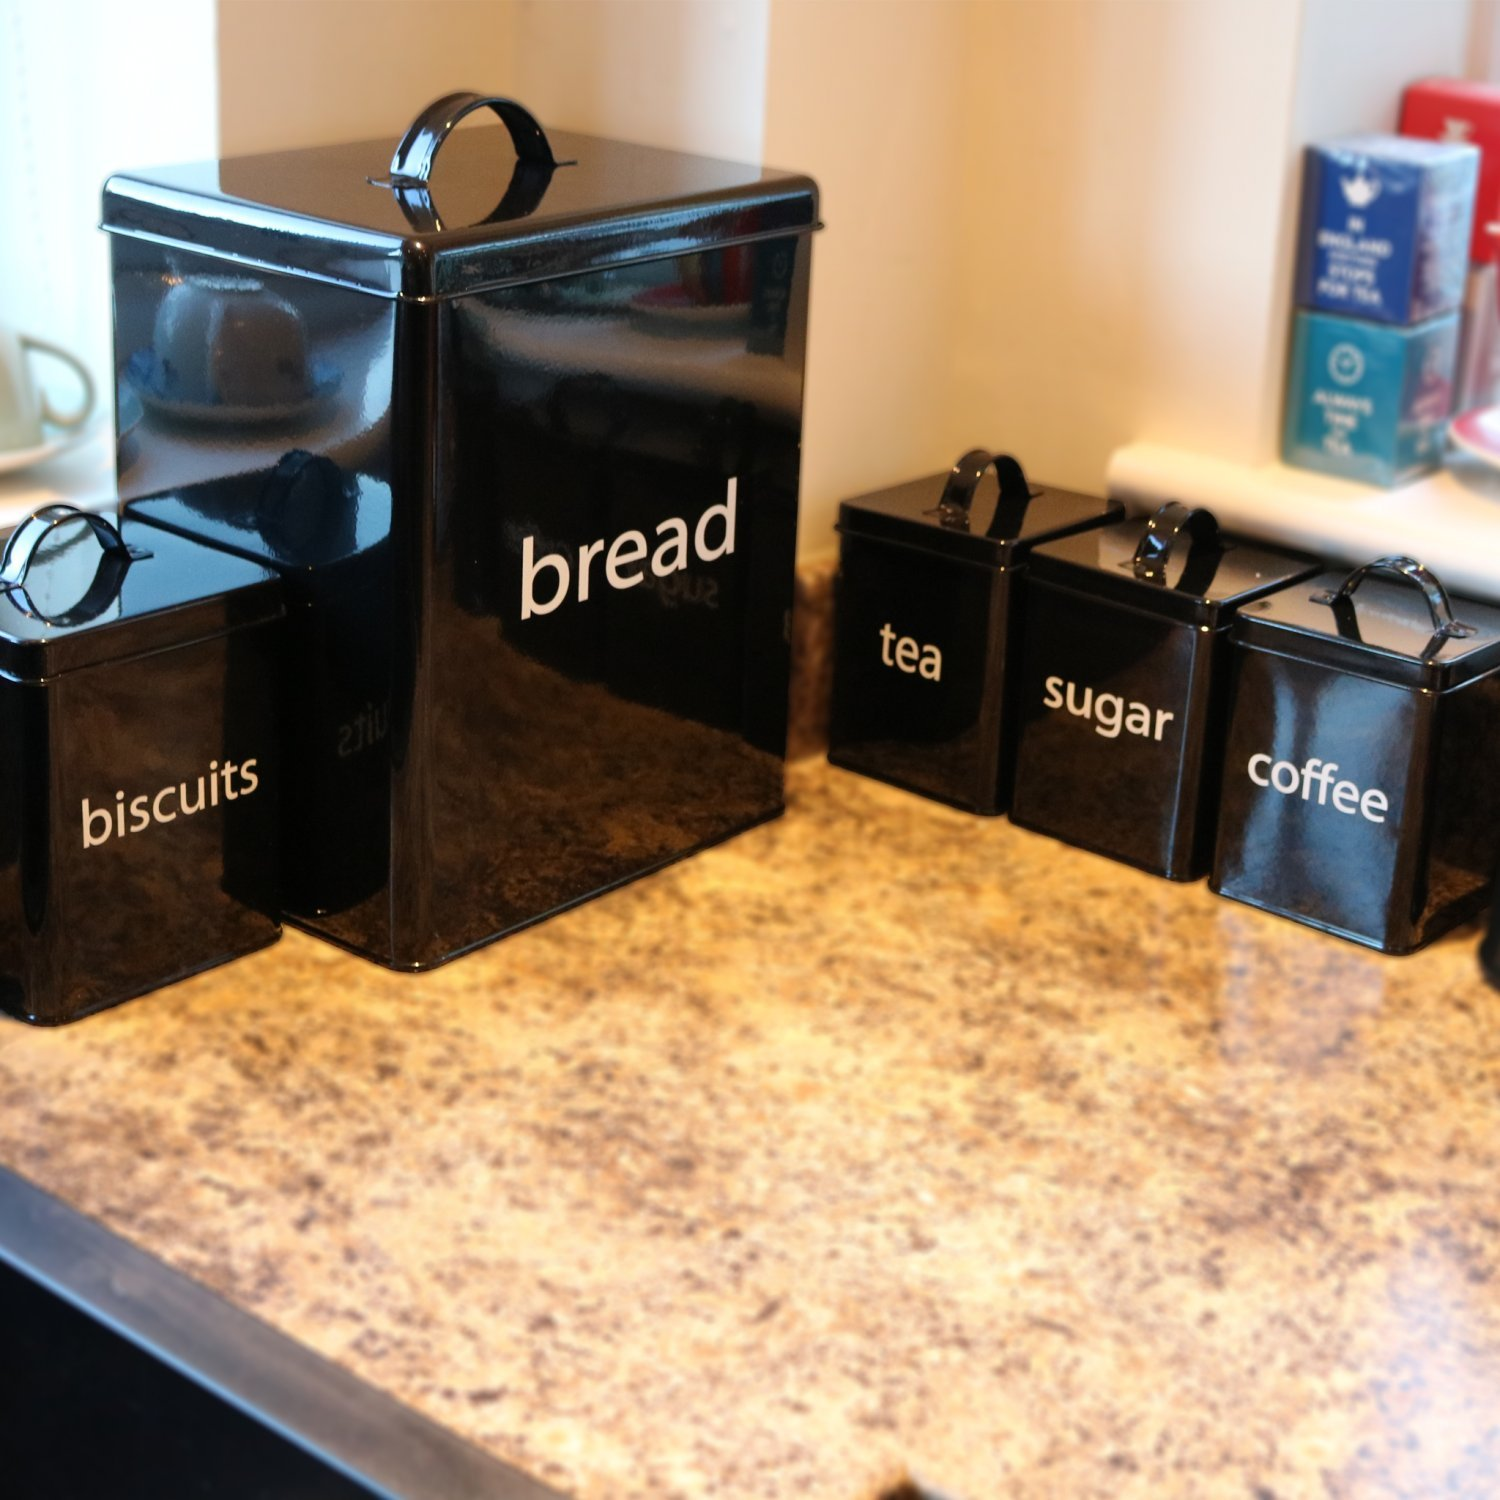 5pc Black Kitchen Canister Set Bread Biscuits Tea Sugar